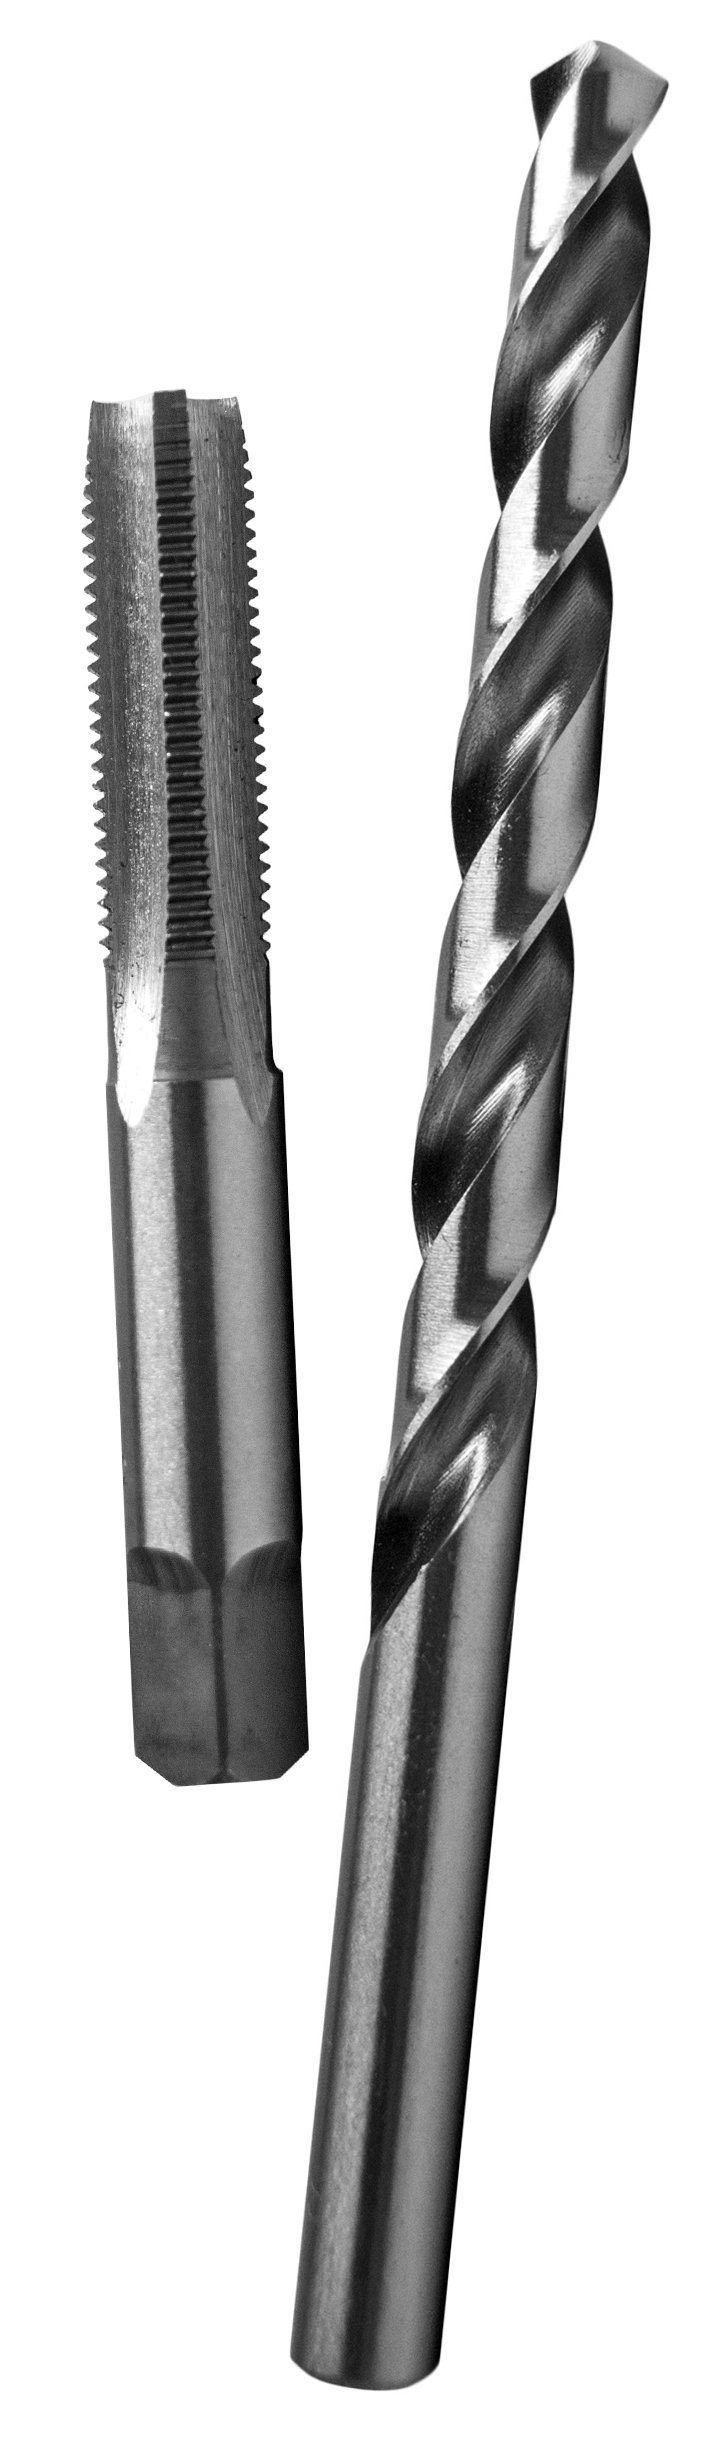 Century Drill & Tool 94506 5/16-24 NF Tap & Letter I Drill Combo Pack